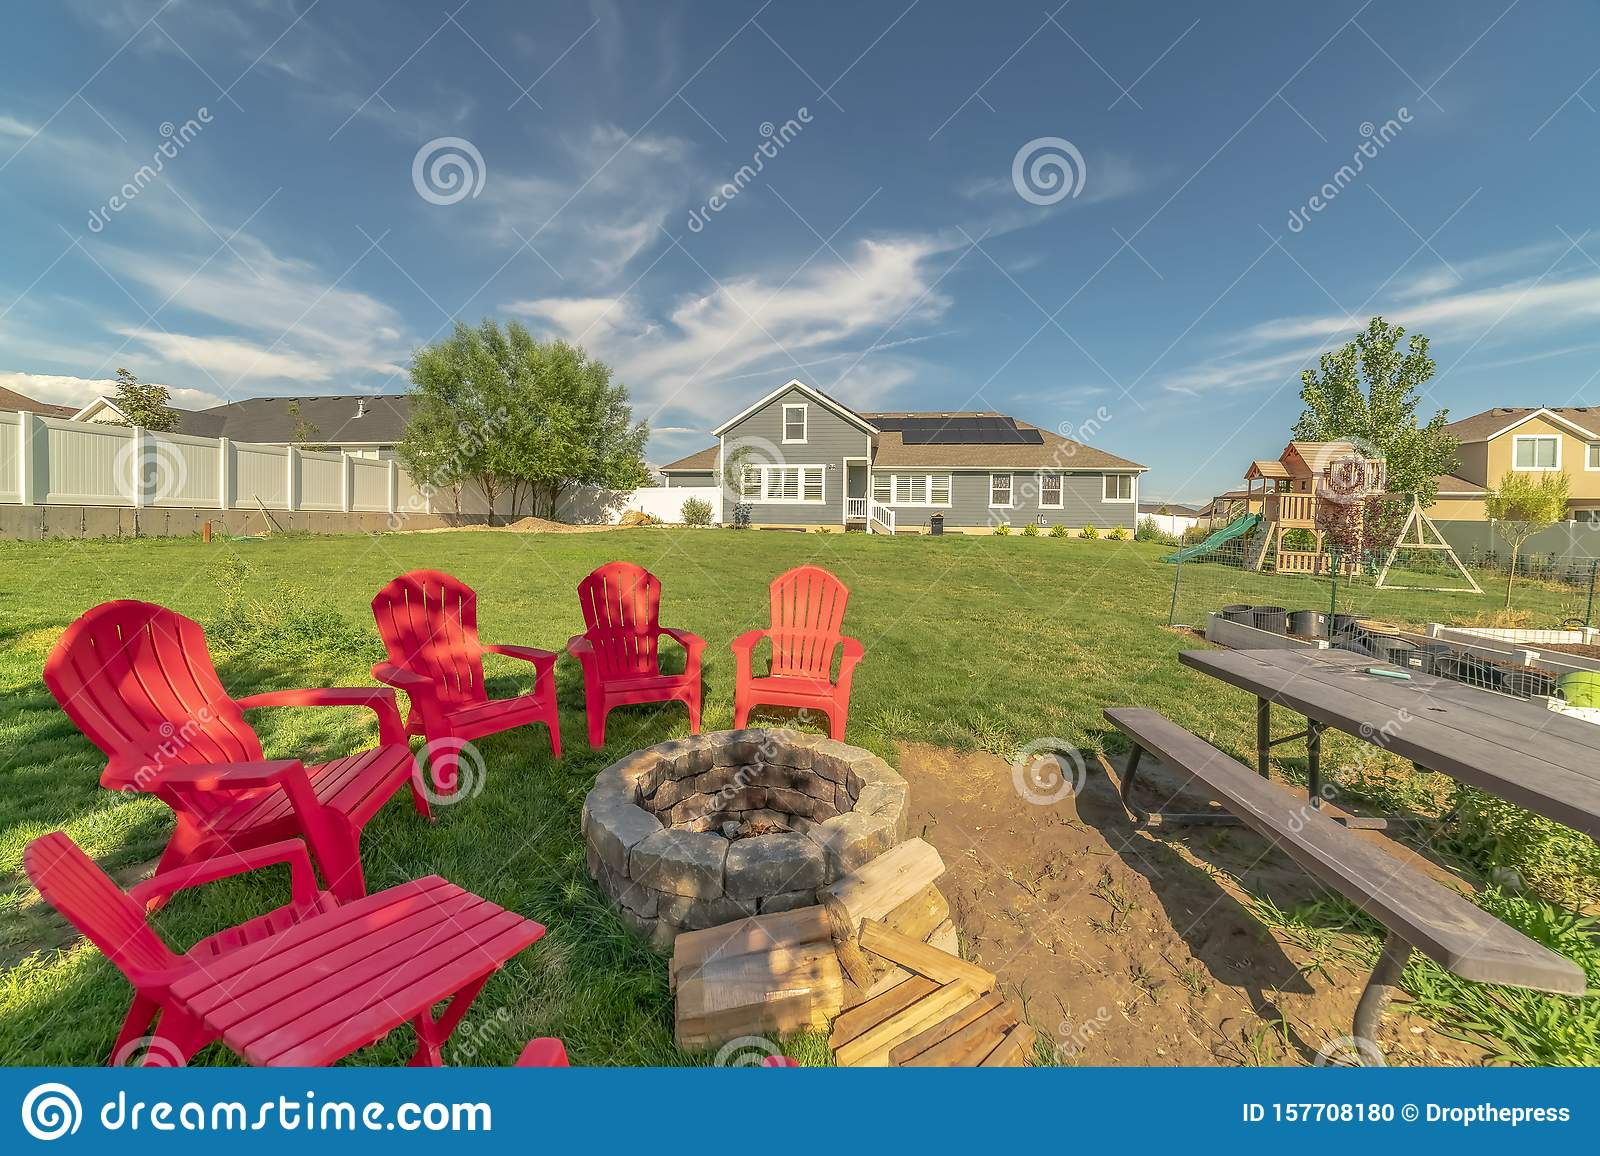 Red Outdoor Chairs And Picnic Table With Bench Around A Circular Stone Fire Pit Stock Photo Image Of Blue Sunny 157708180